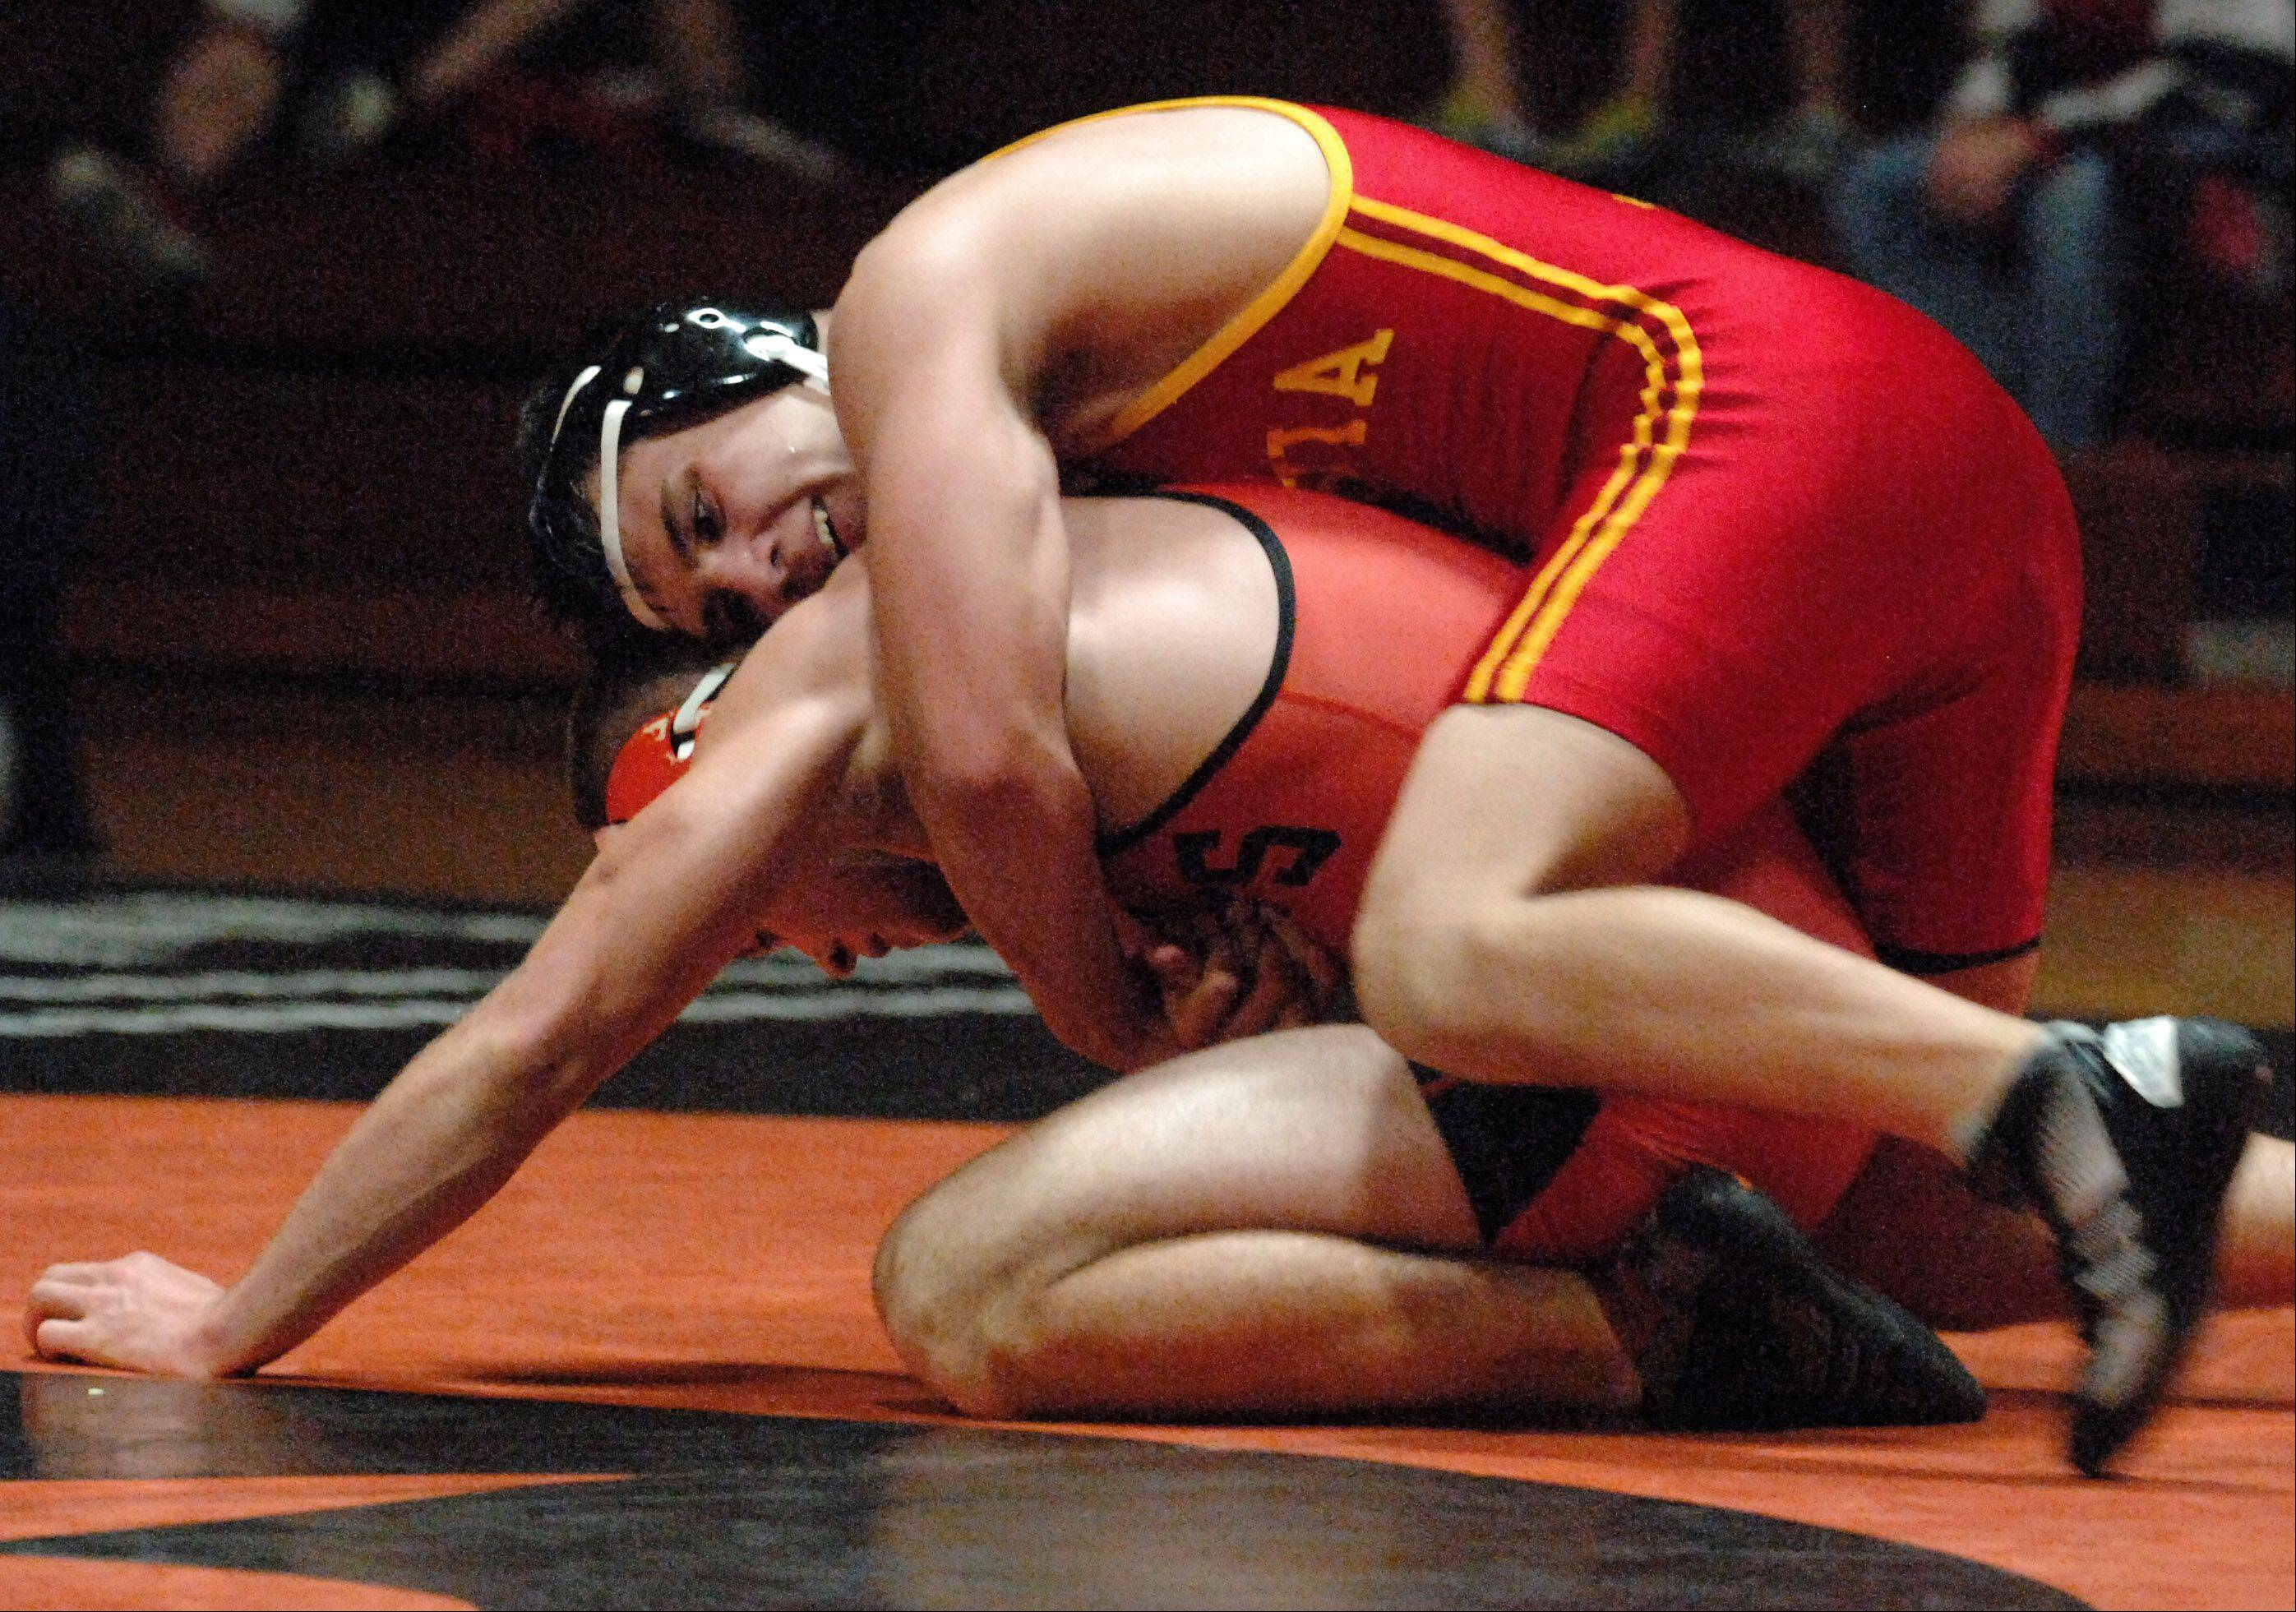 Batavia's Jon Wagner beat St. Charles East's Brad Kearbey in the 160-pound division during Thursday's wrestling action at St. Charles East.